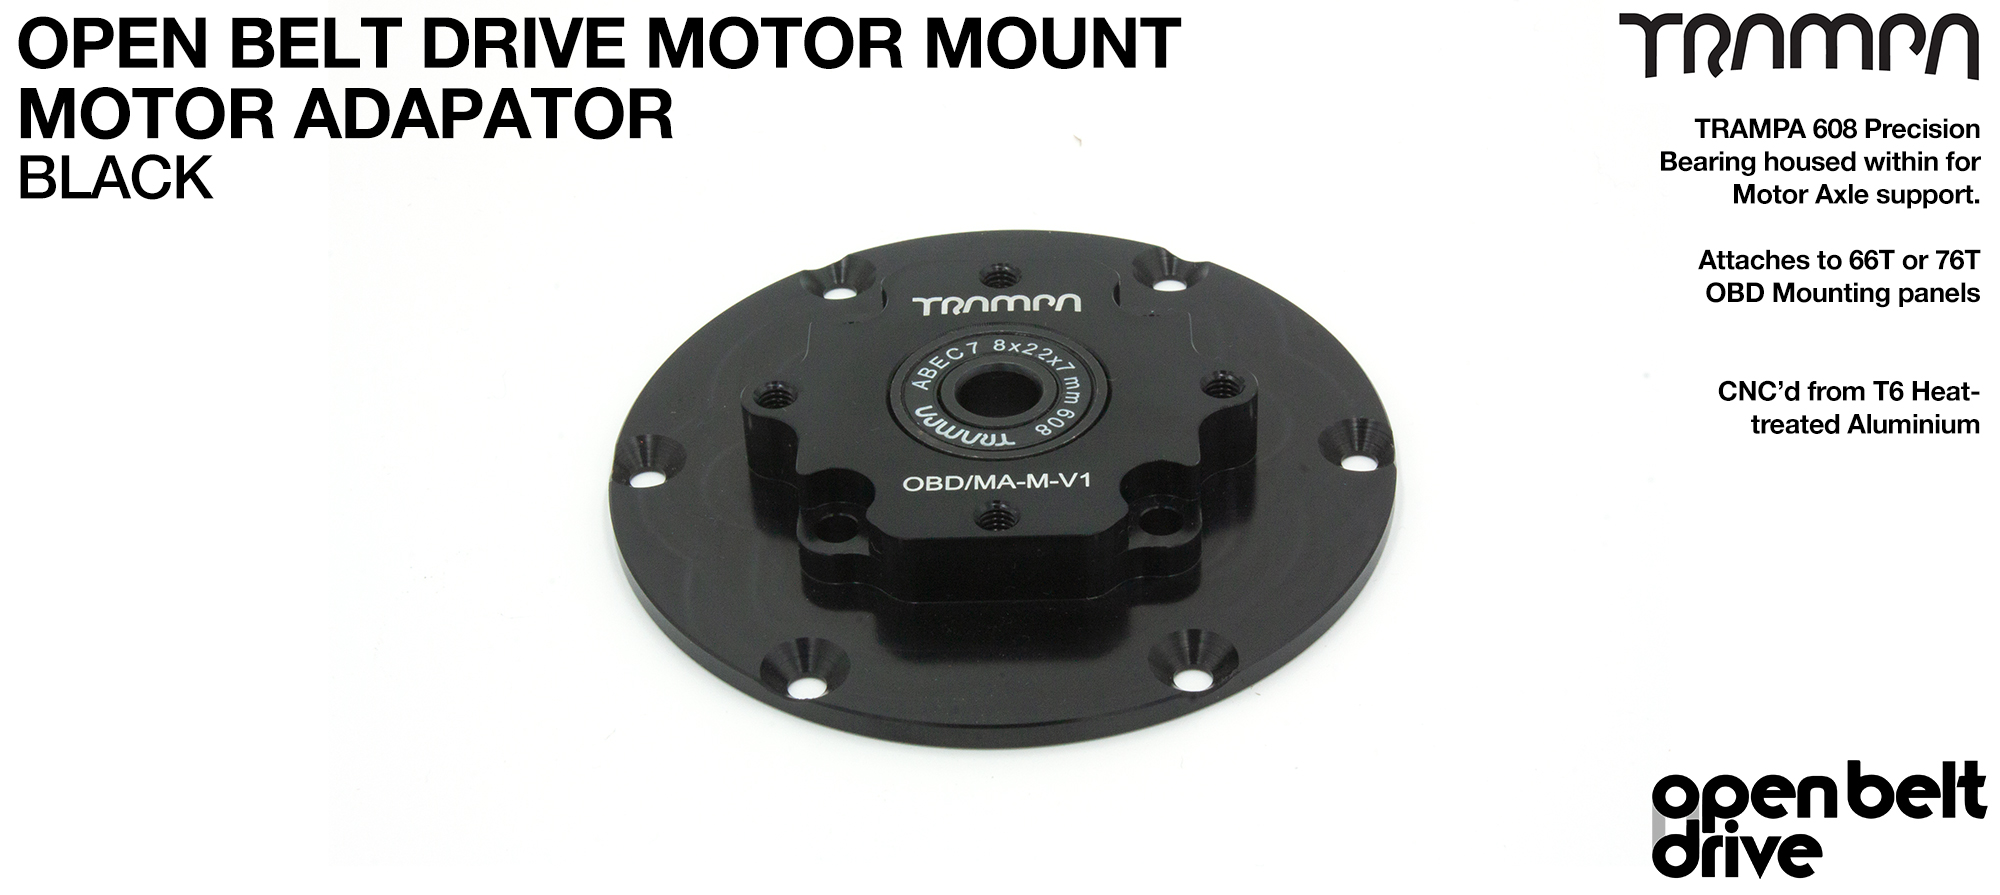 OBD Motor Adaptor with Housed Bearing - BLACK